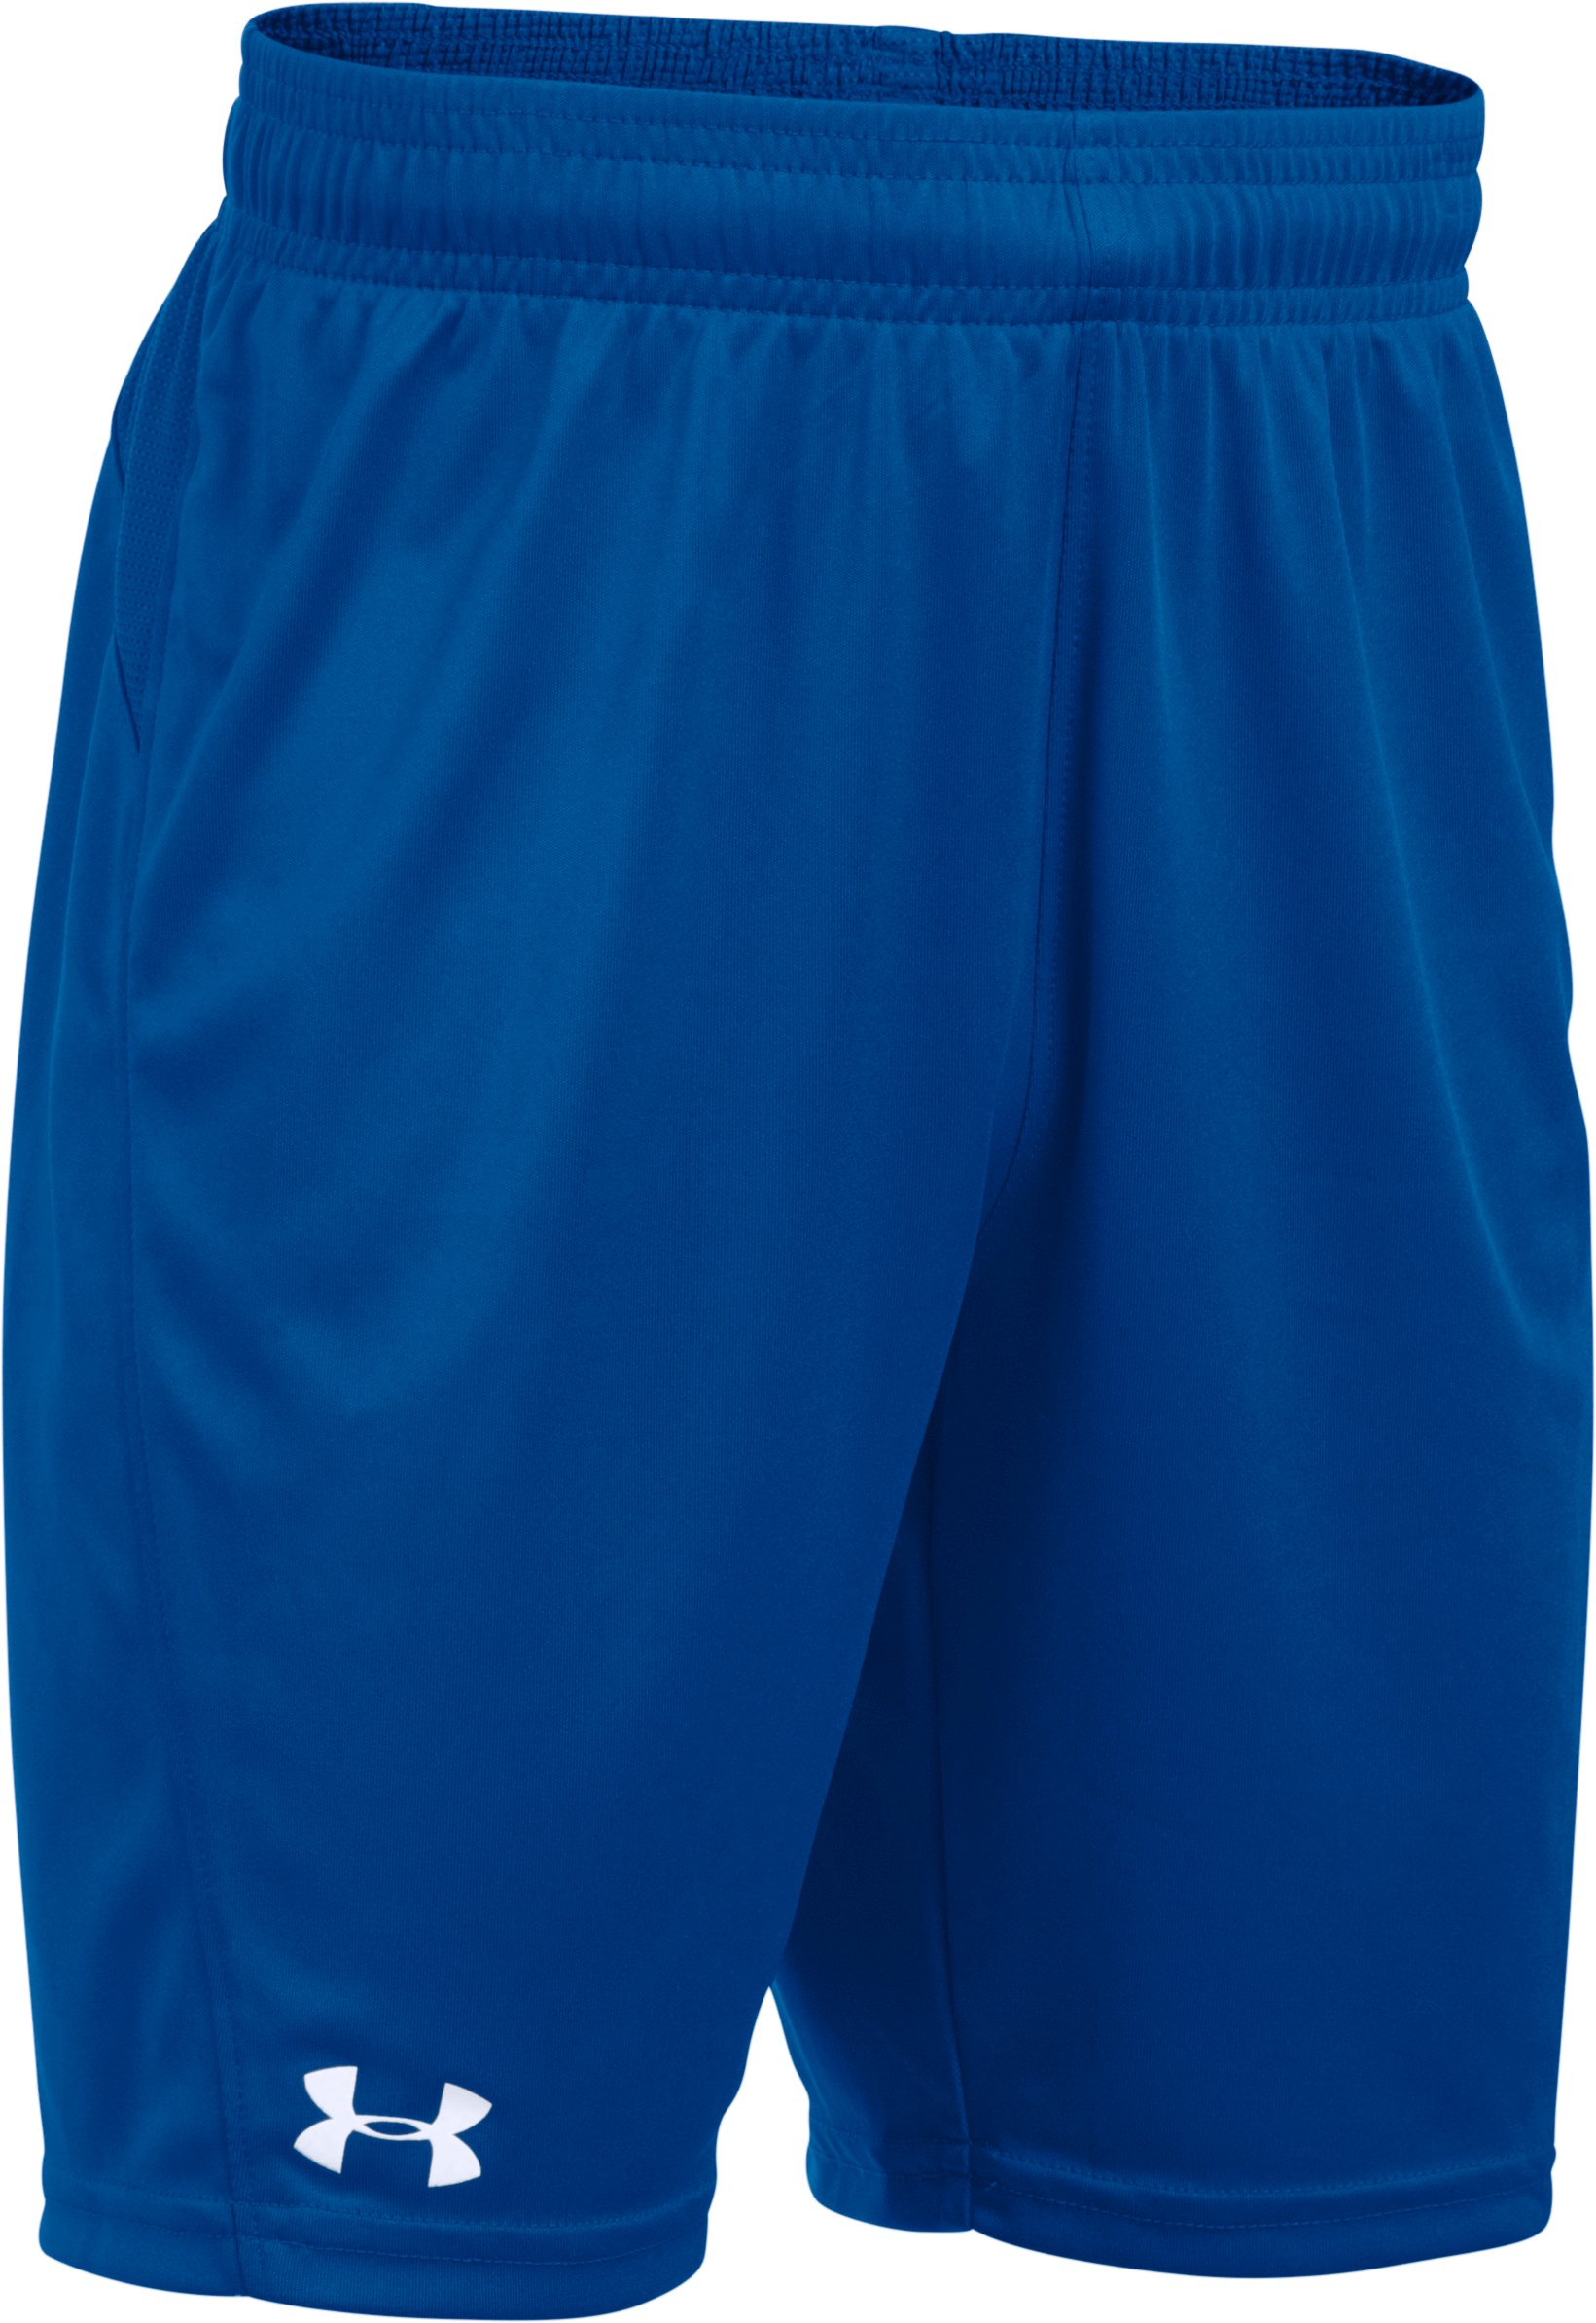 Boys' UA Challenger Knit Shorts, Royal